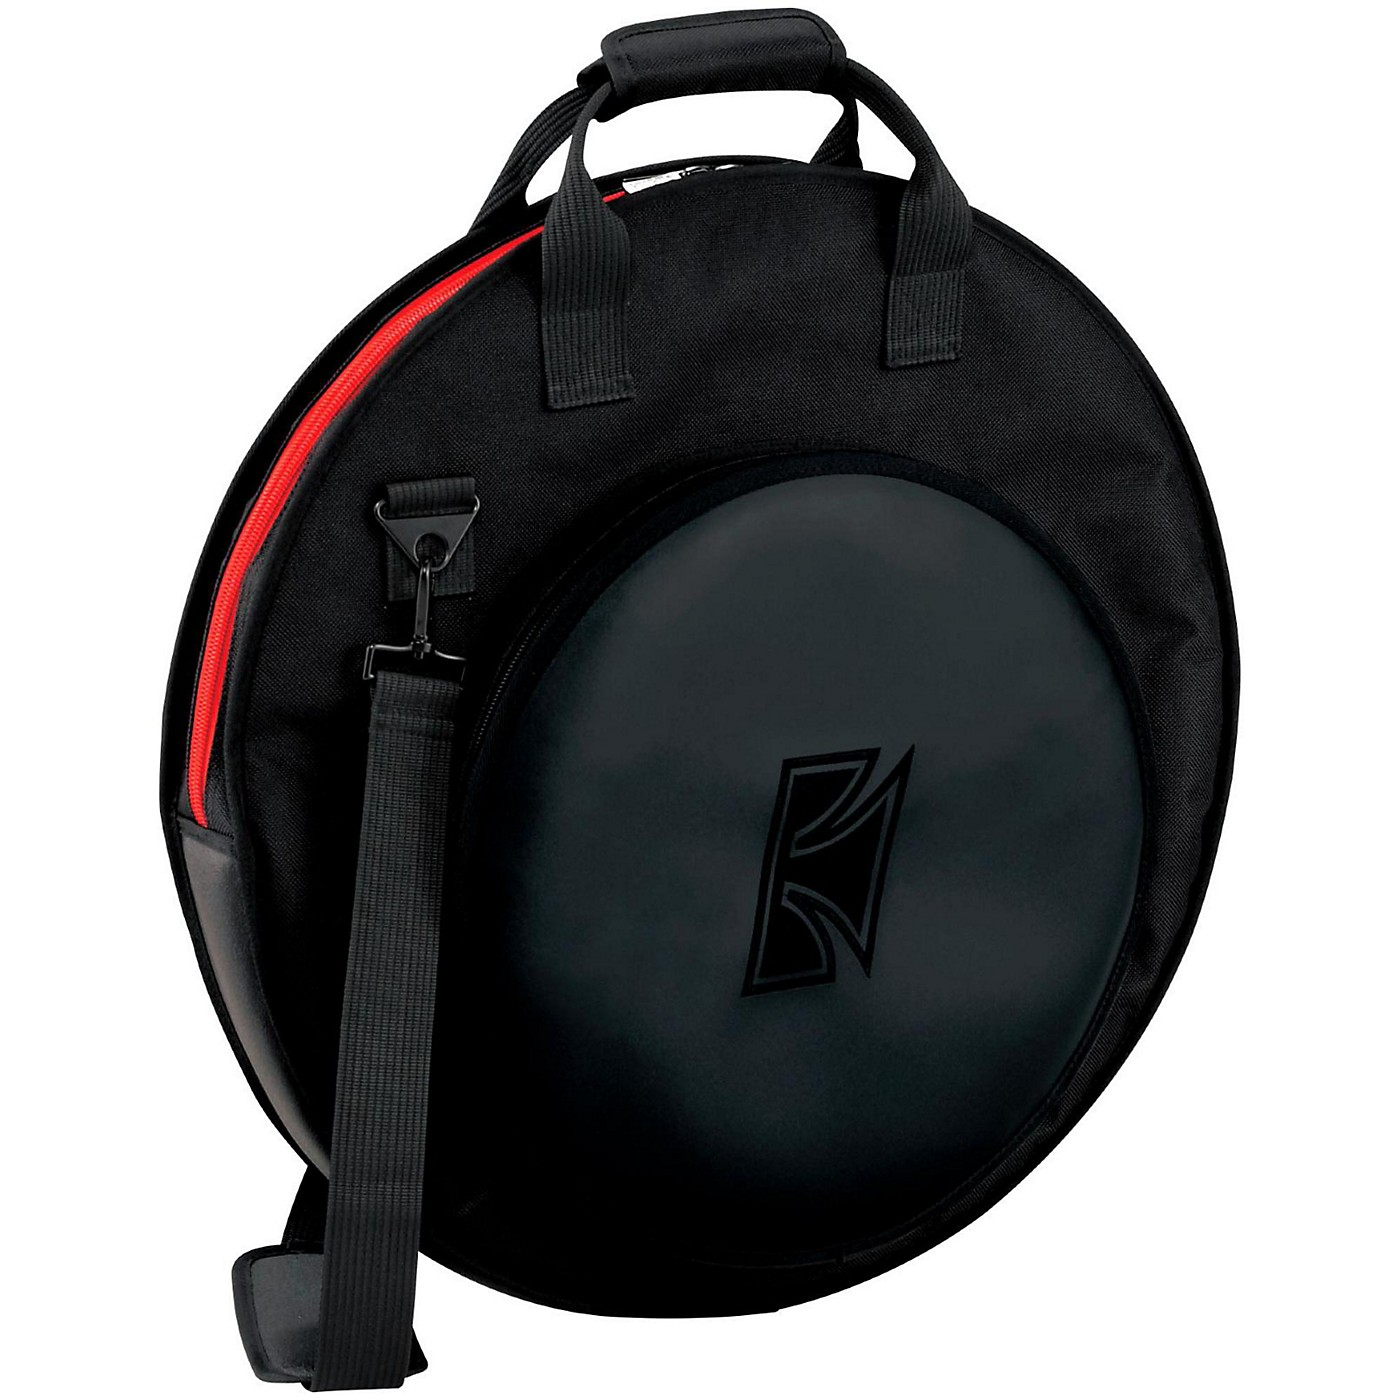 TAMA Powerpad Cymbal Bag thumbnail